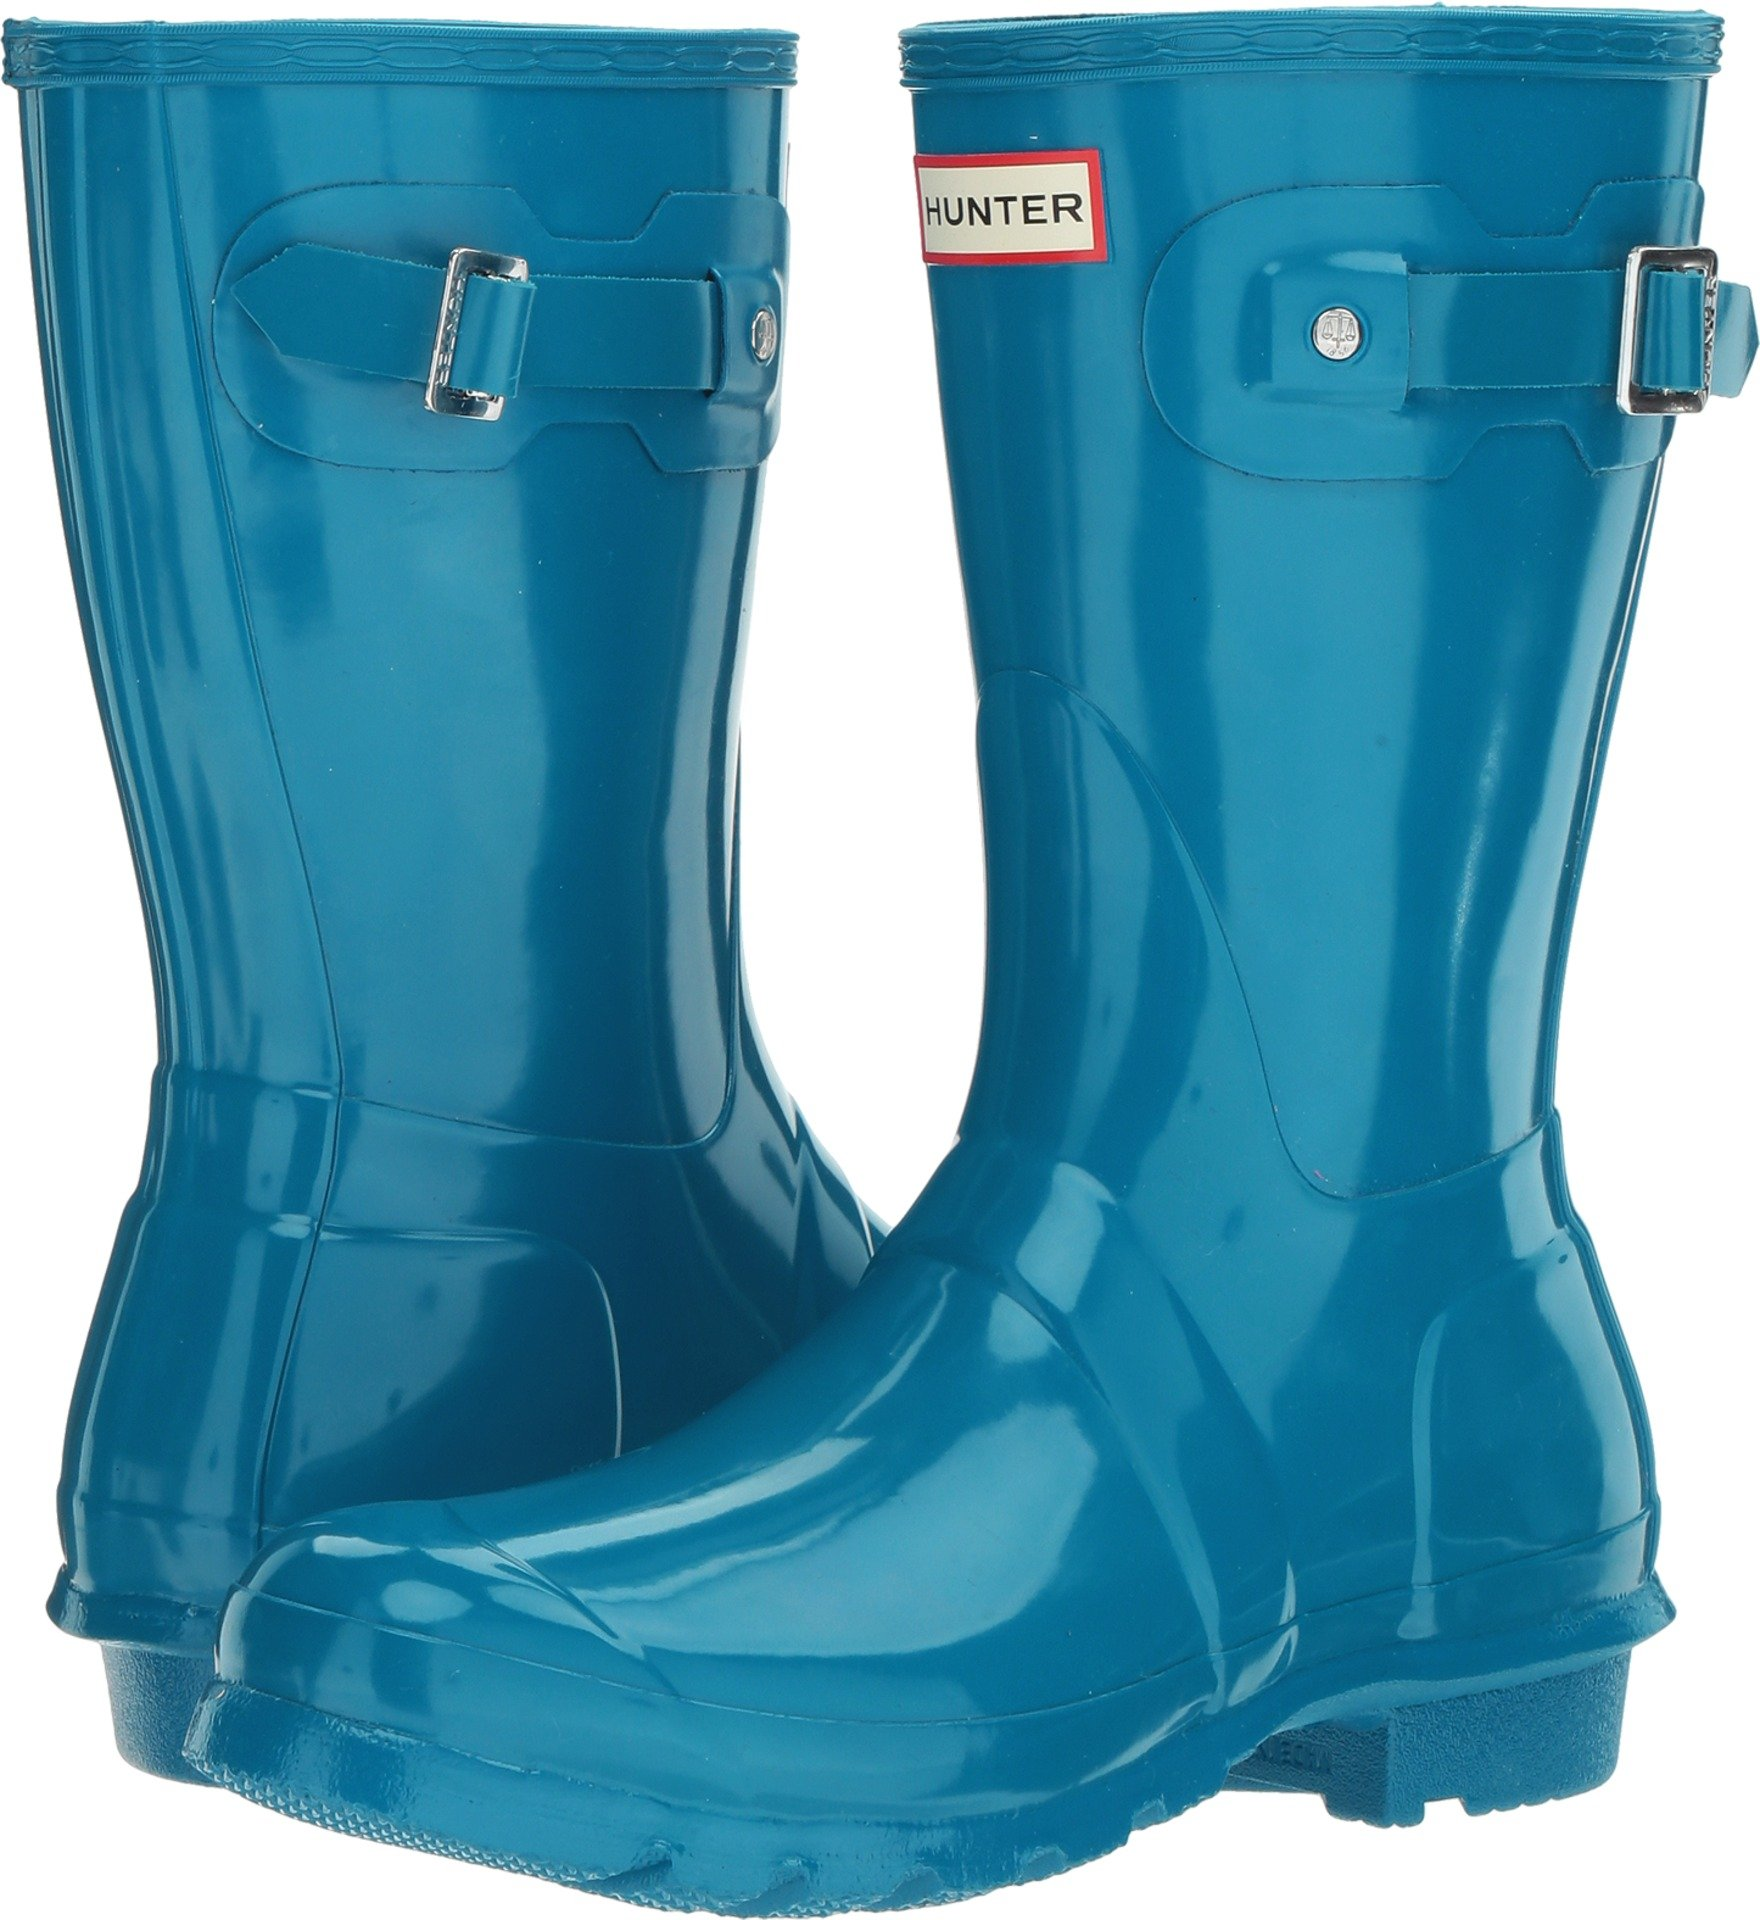 Hunter Women's Original Short Gloss Ocean Blue Rain Boots - 9 B(M) US